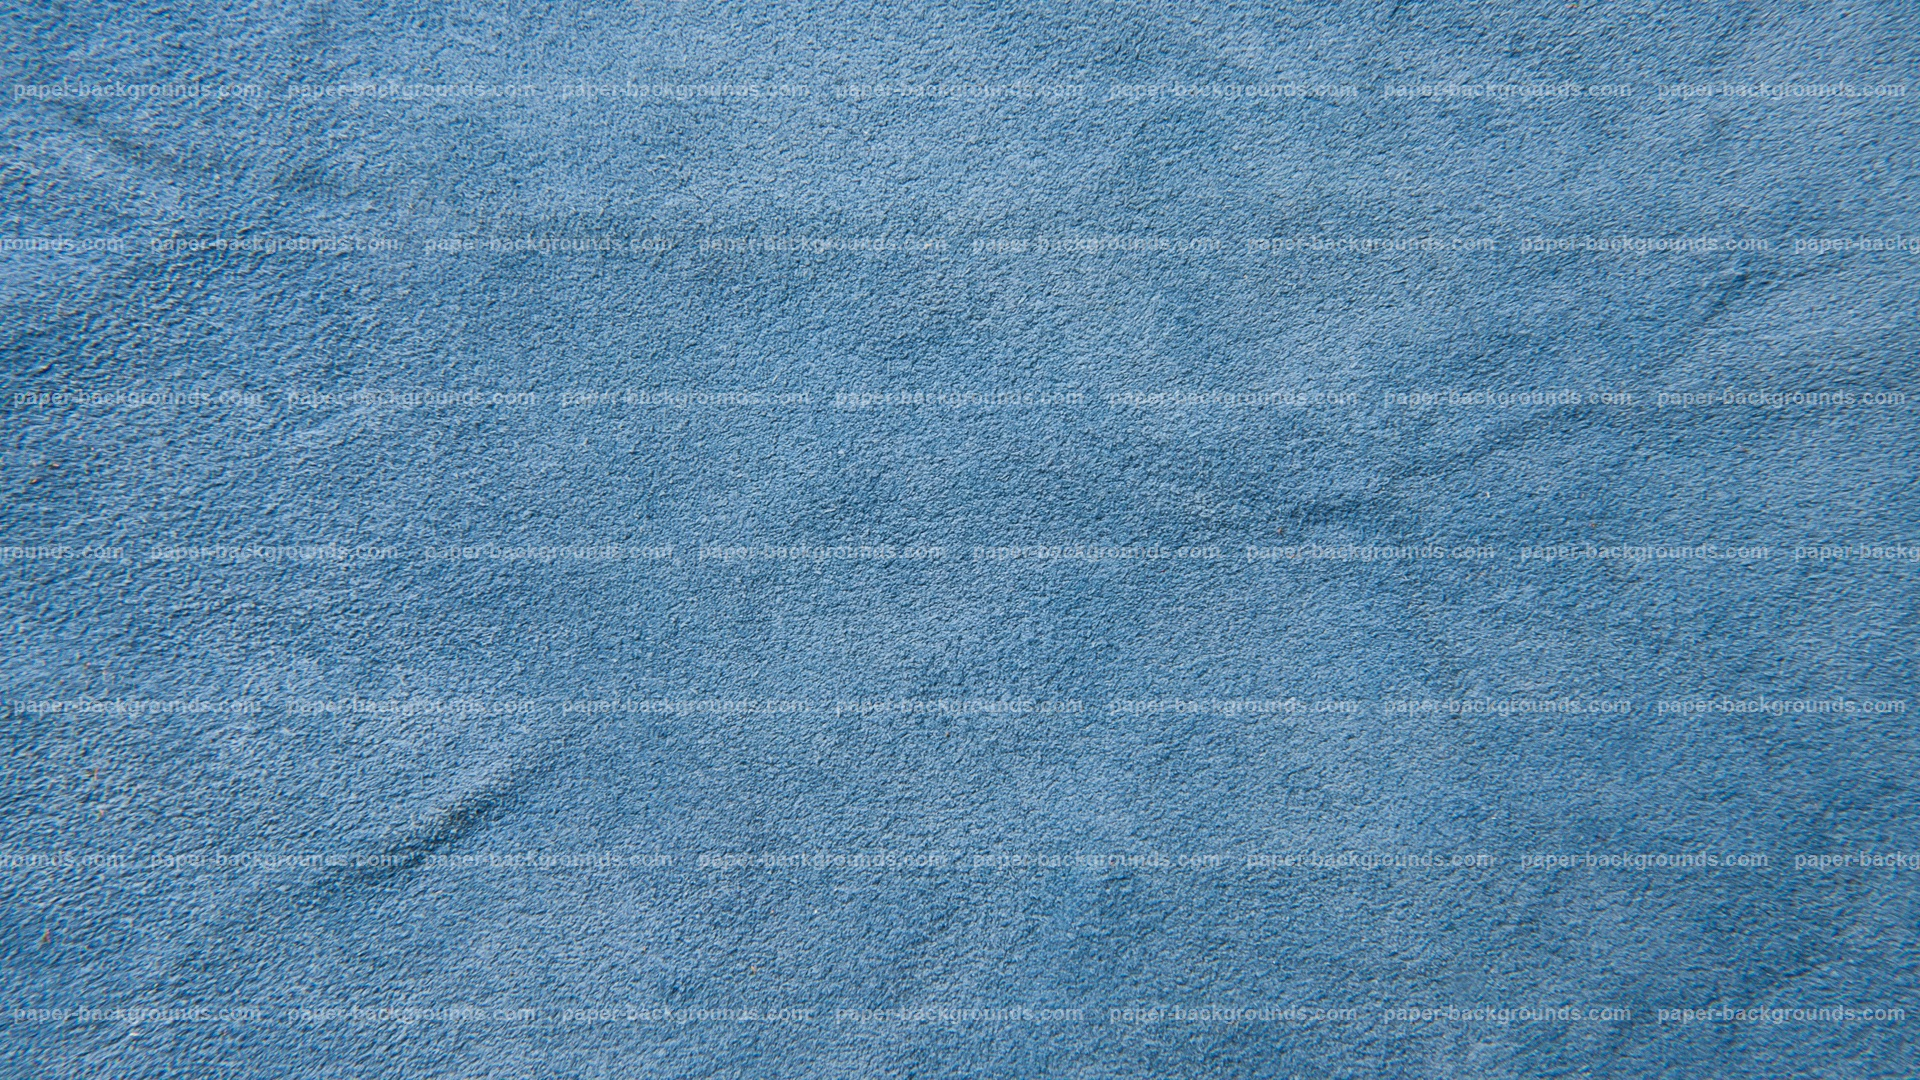 Blue Soft Leather Texture Background HD